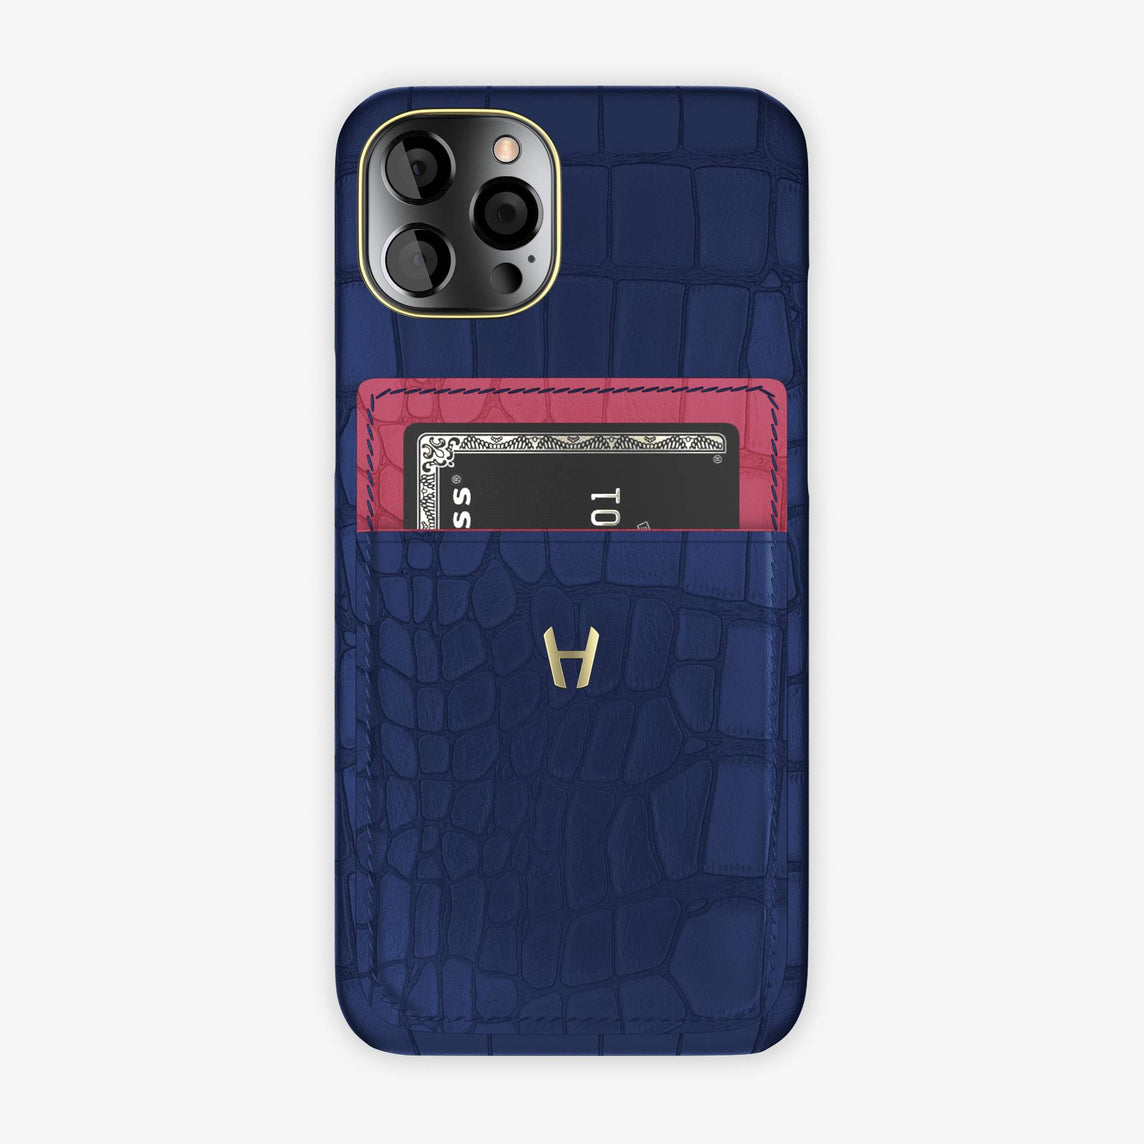 Alligator Pocket Case iPhone 12 & 12 Pro | Navy Blue/Pink Girly - Yellow Gold